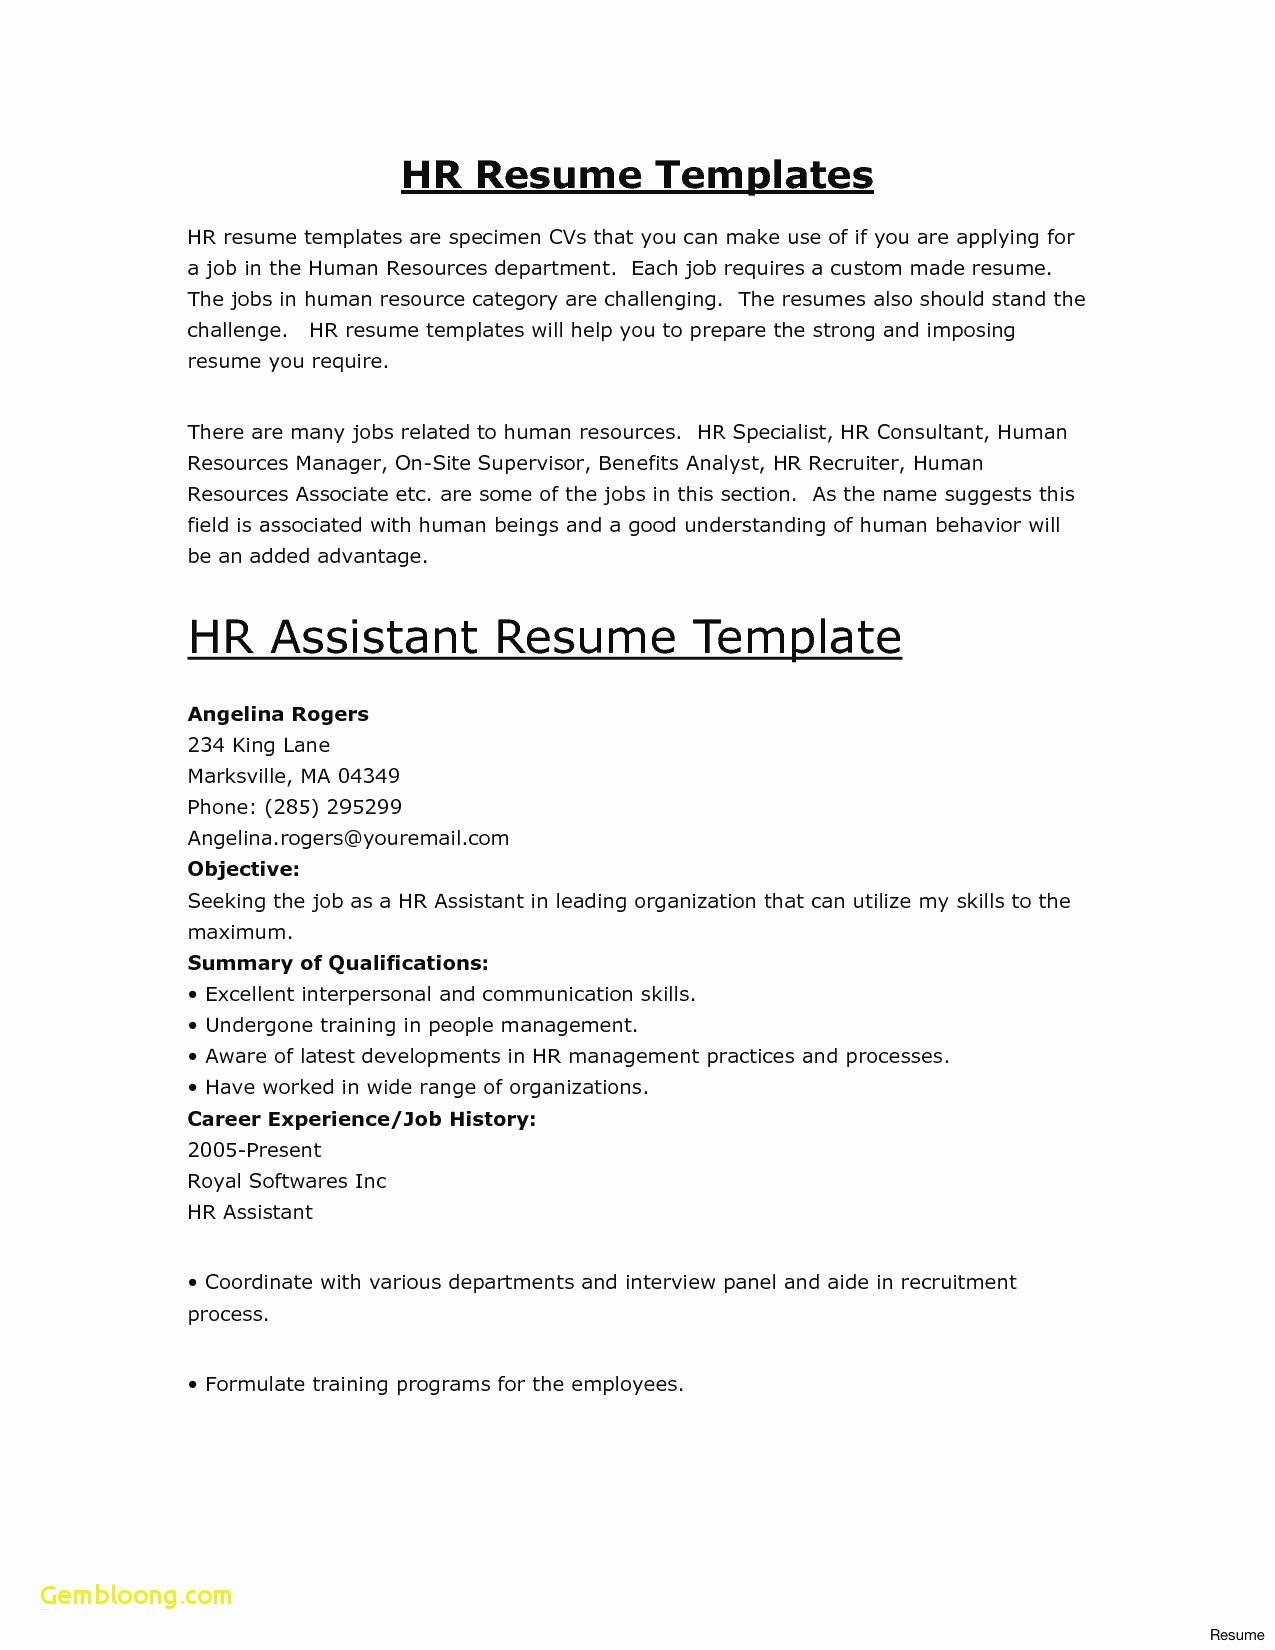 resume template for supervisor position example-Graphic Design Job Description Resume Fresh Best Resumes Ever Awesome Resume Examples Pdf Best Resume Pdf 0d 4-o